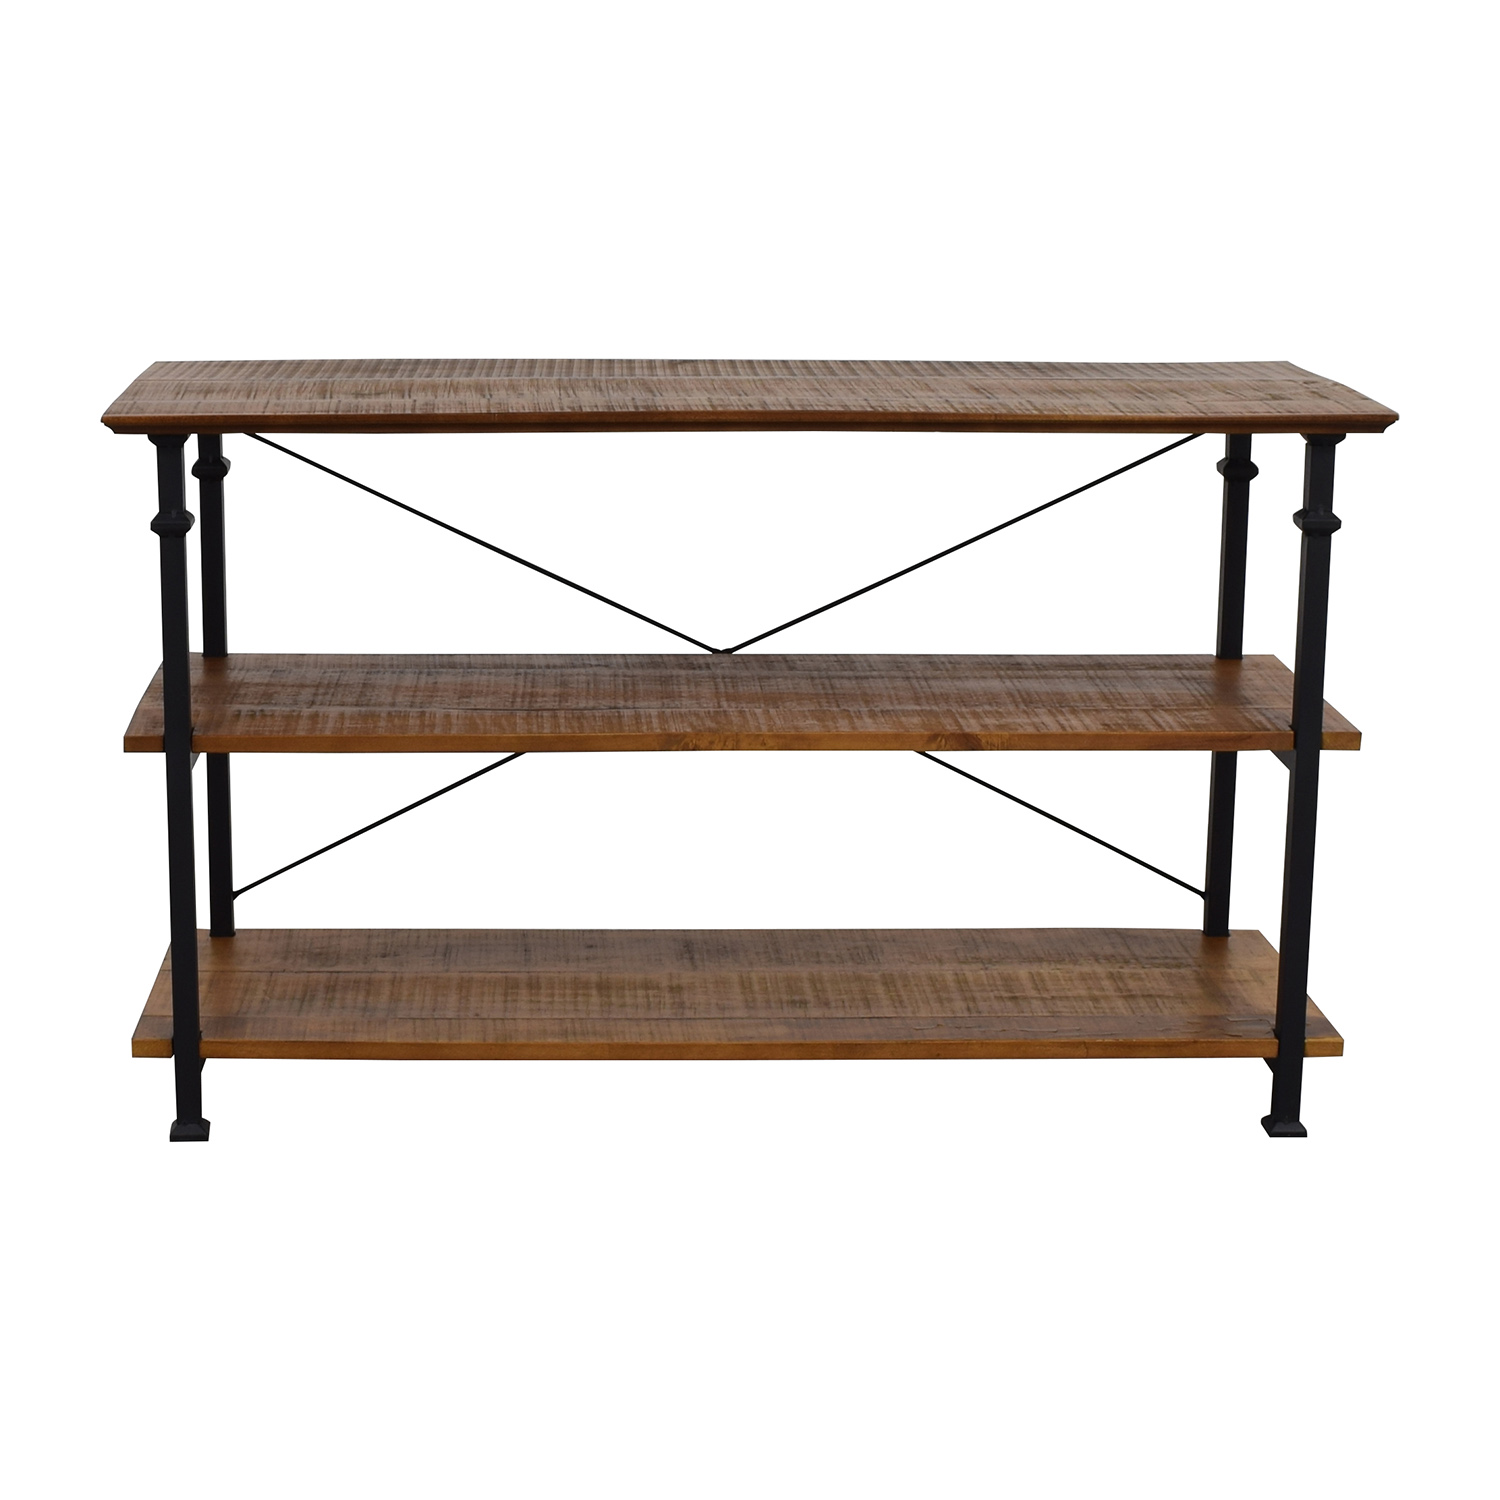 Wayfair Wayfair Rustic Wood and Metal Bookcase or TV Stand nyc